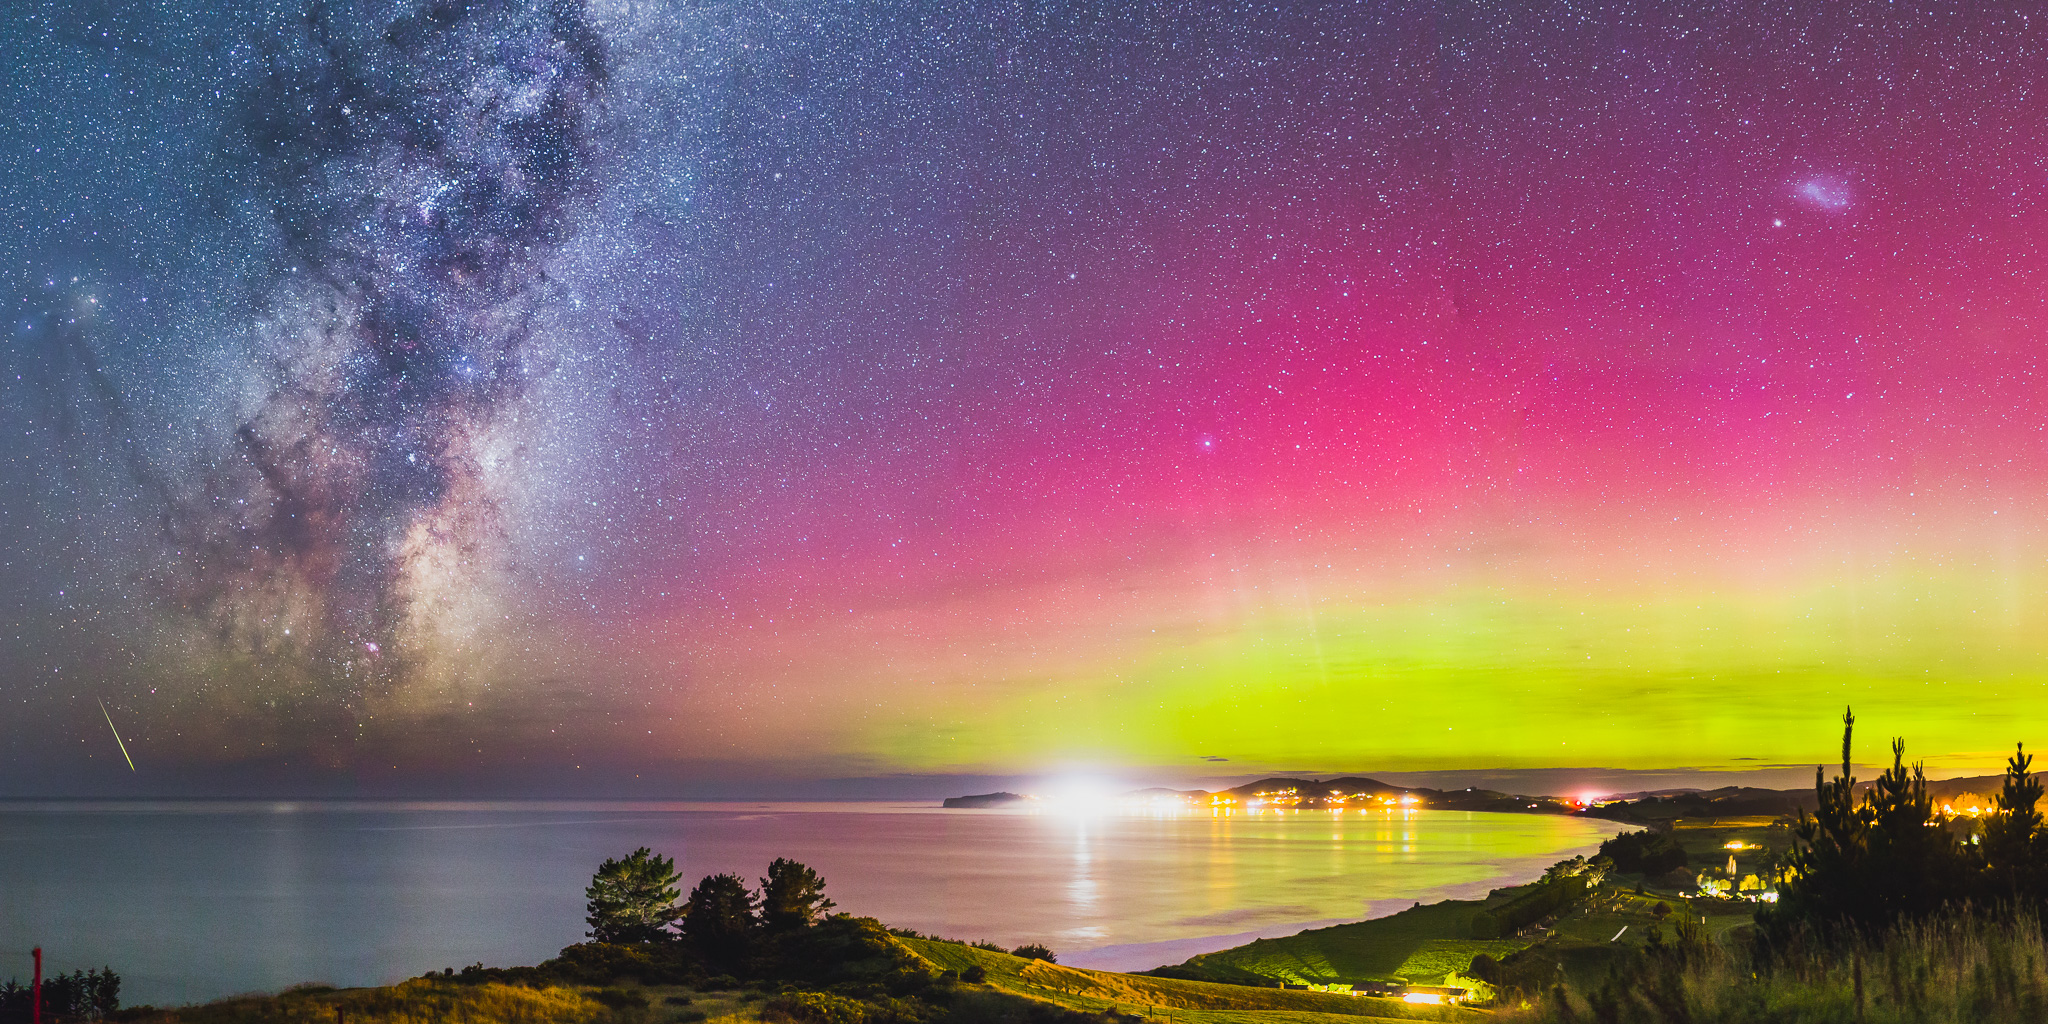 A NIGHT IN NEW ZEALAND